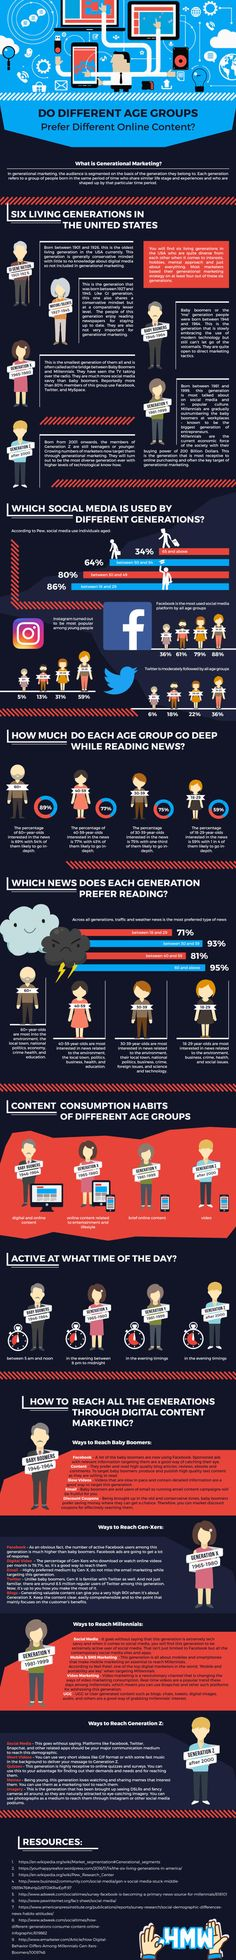 https://i.marketingprofs.com/assets/images/daily-chirp/180316-infographic-generational-marketing-small.jpg